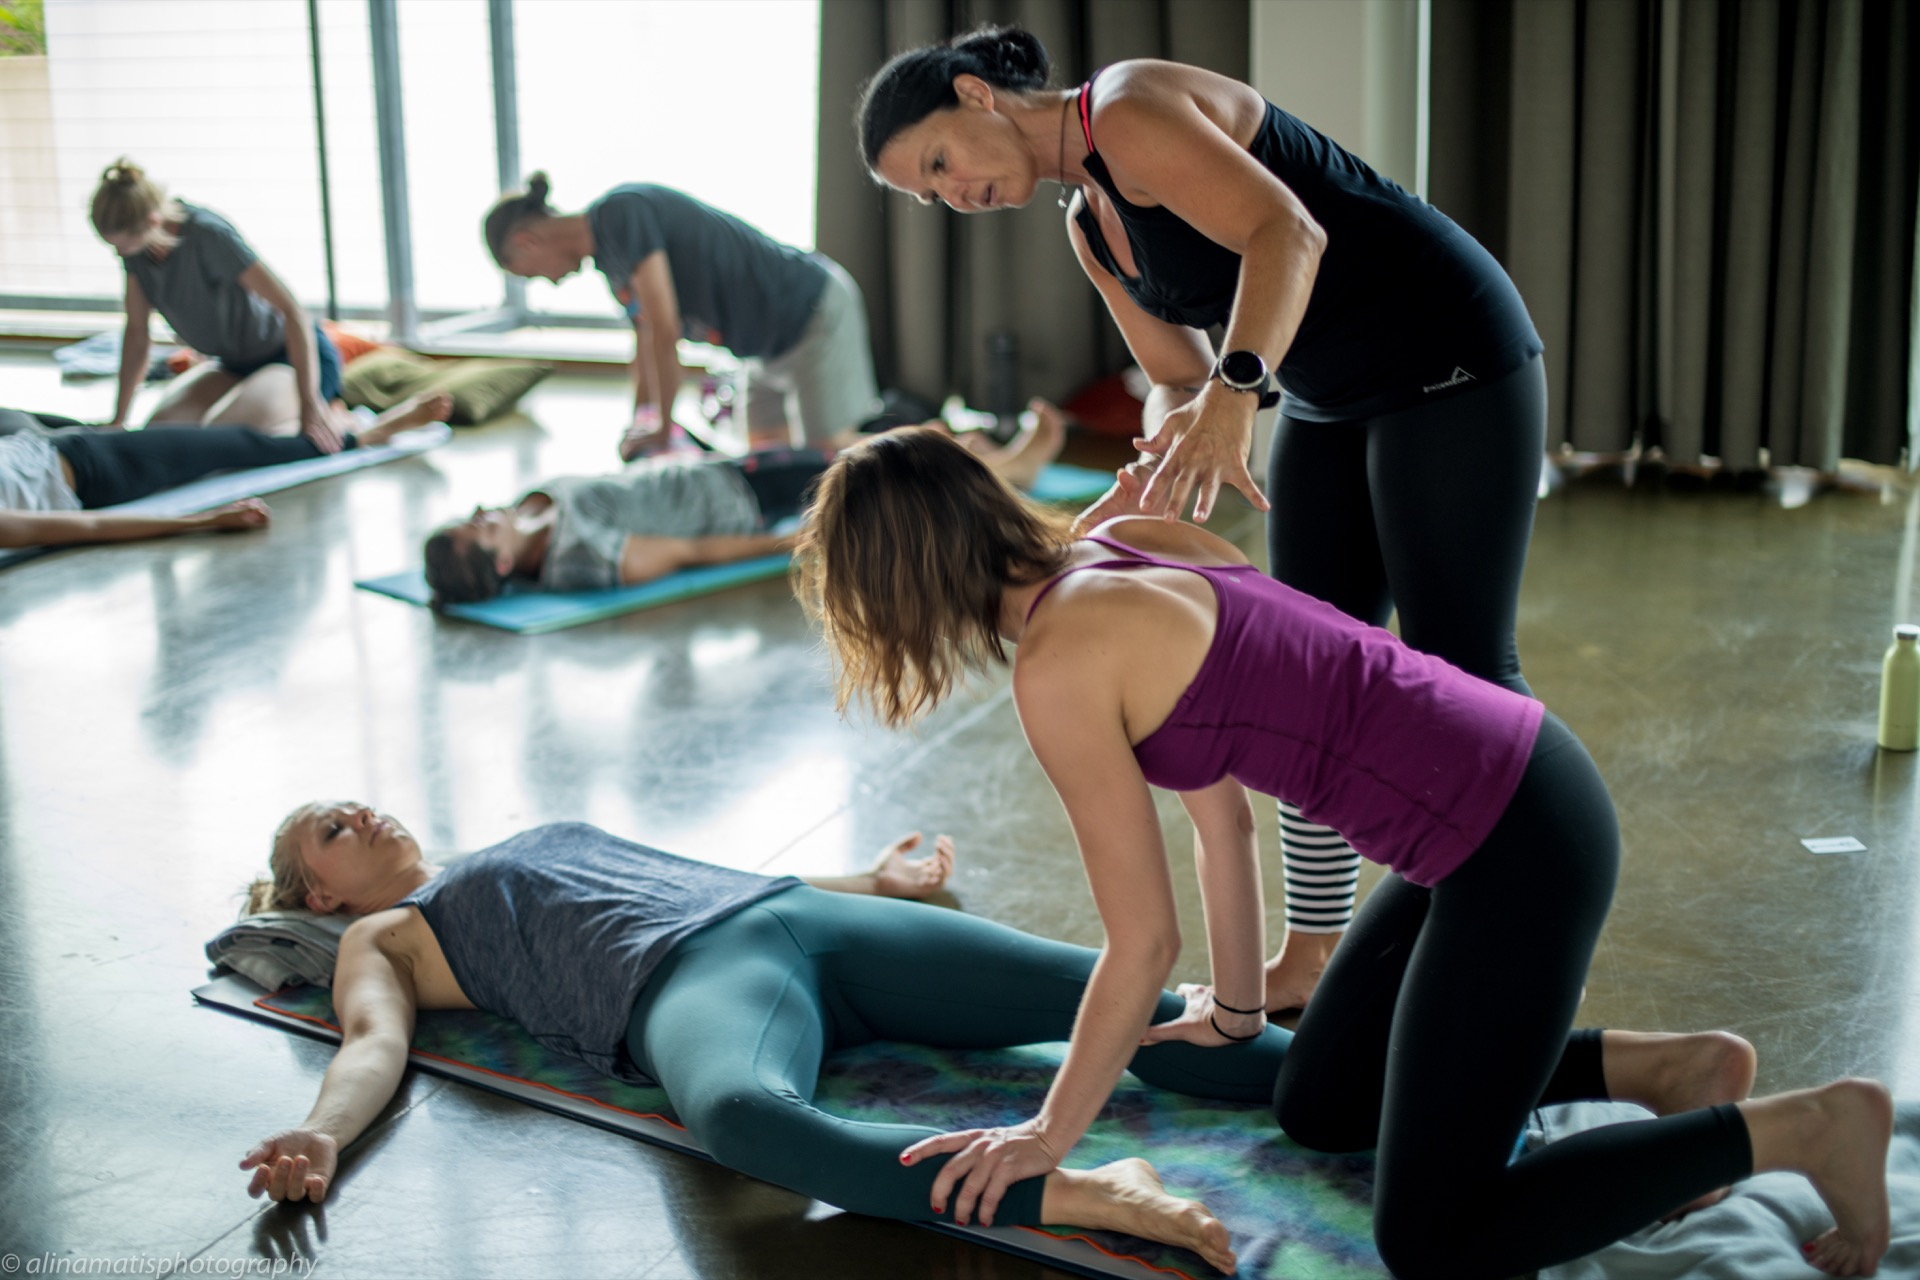 Hie-Kim-Friends-2018-Yoga-Retreat-Alina-Matis-Photography-098 - Hie Kim Yoga - Yoga Retreat - Yoga Workshops und Reisen